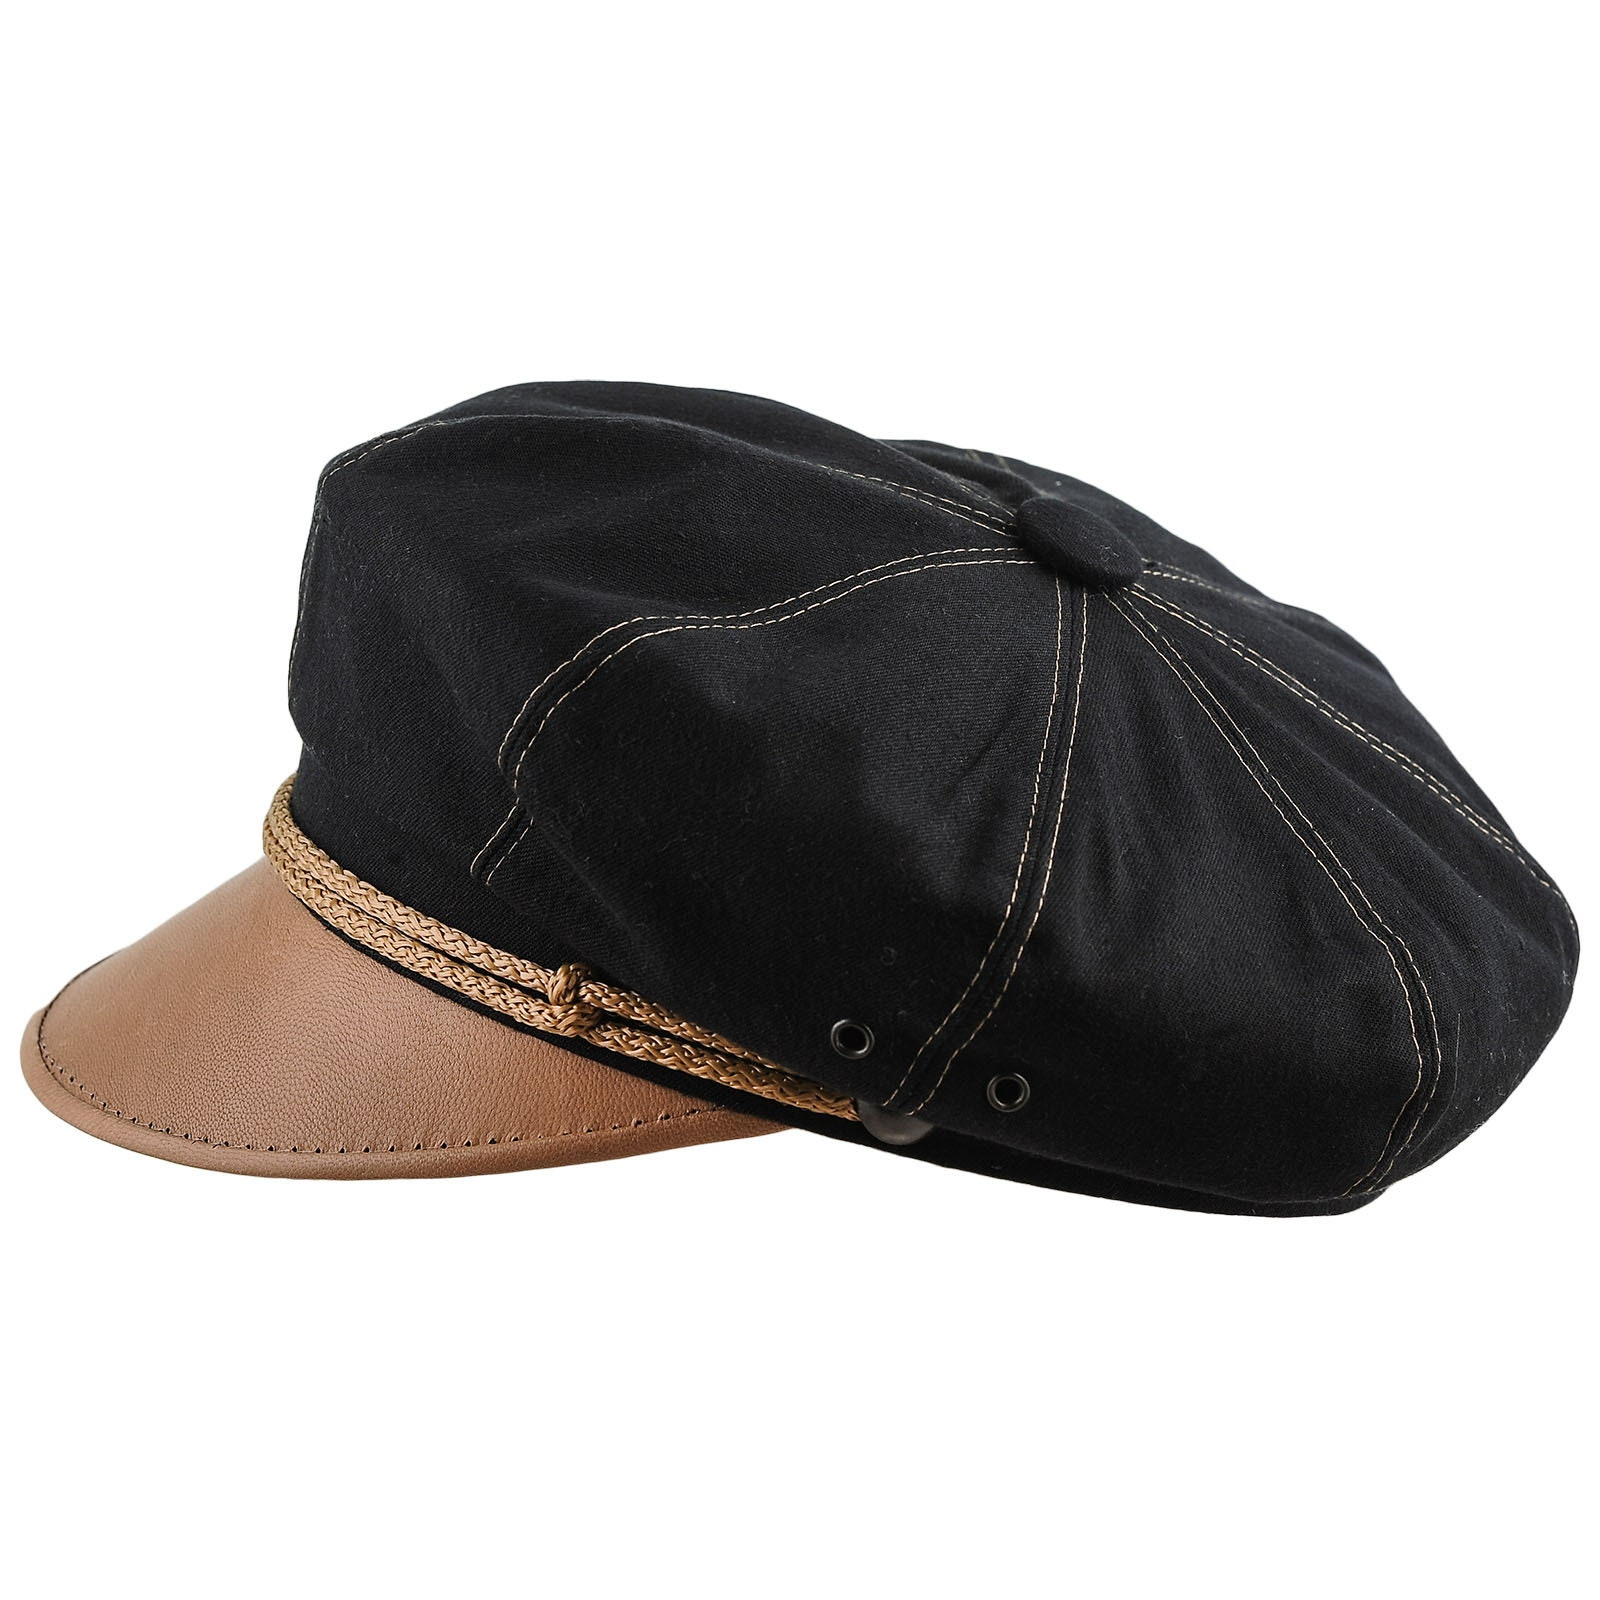 23302a12d82 HARLEY Vintage Motorcycle Cap Pure Cotton Natural Leather